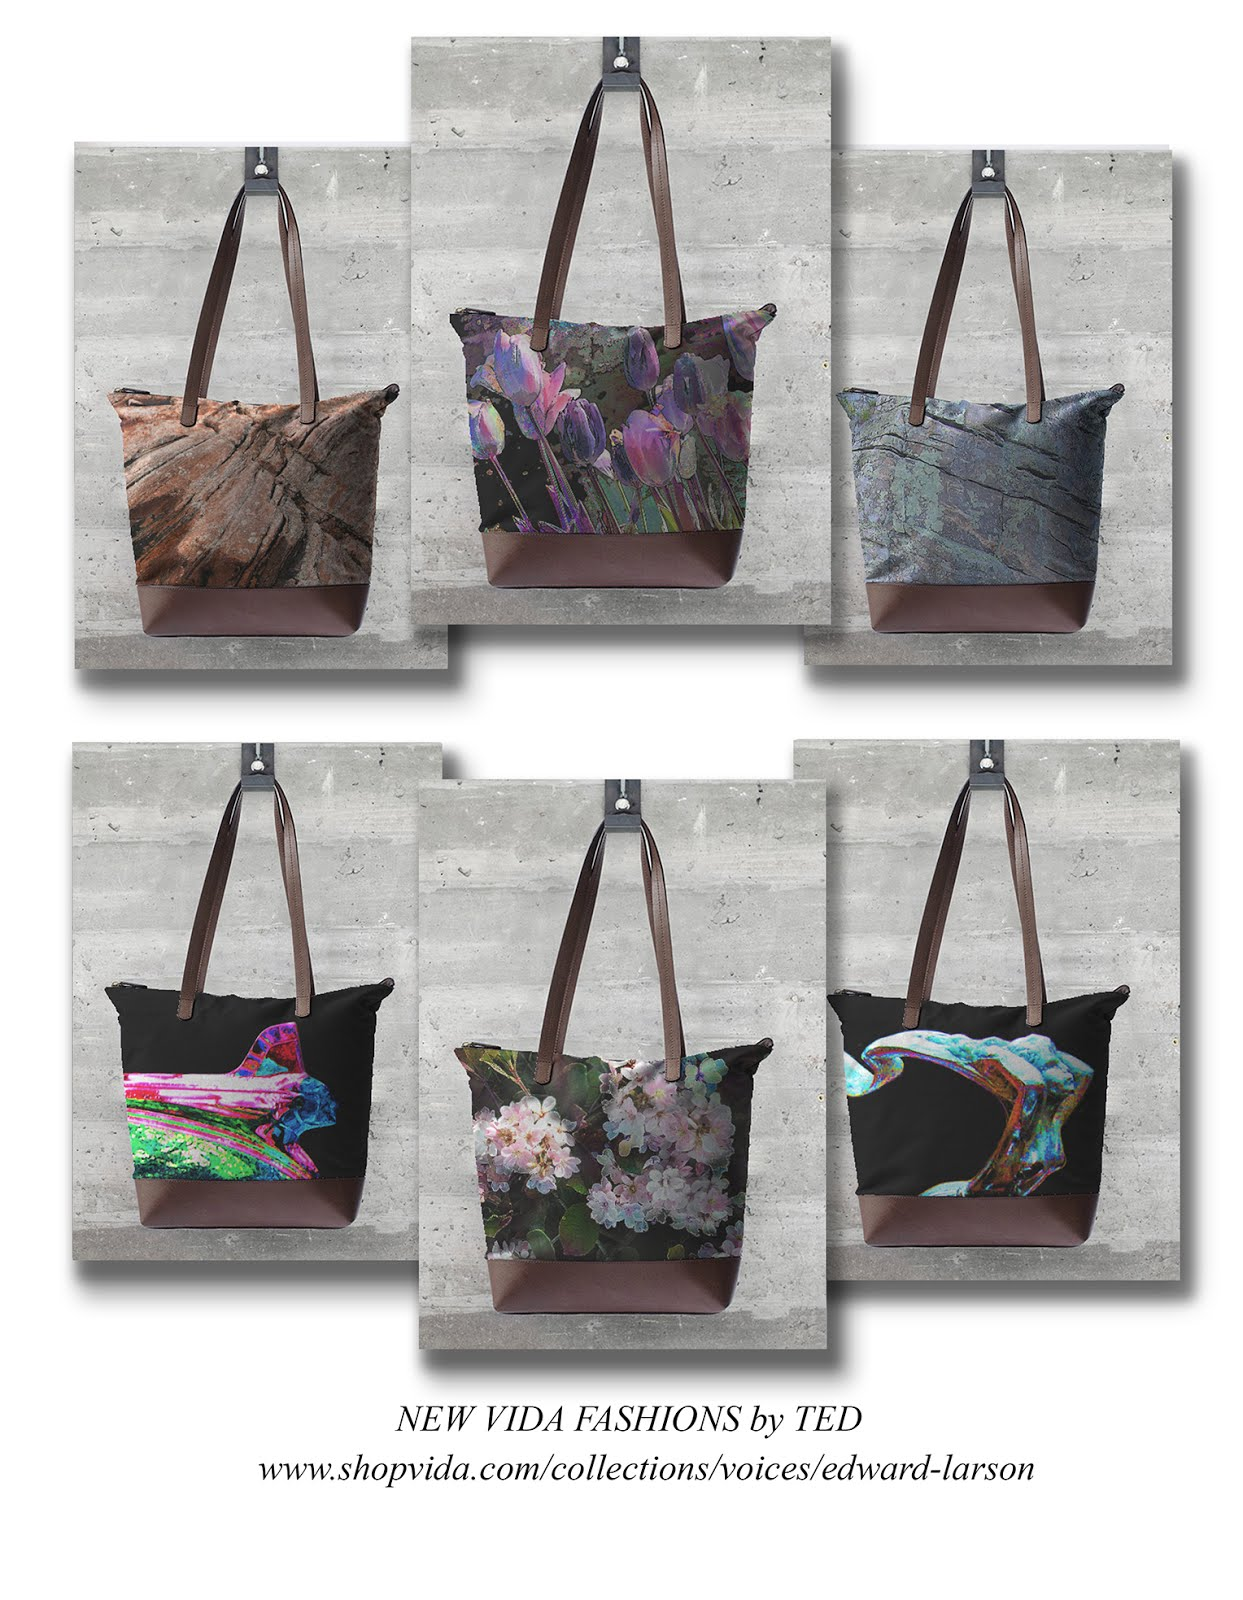 Statement Bag - Flower Power by VIDA VIDA dZGvoG8a